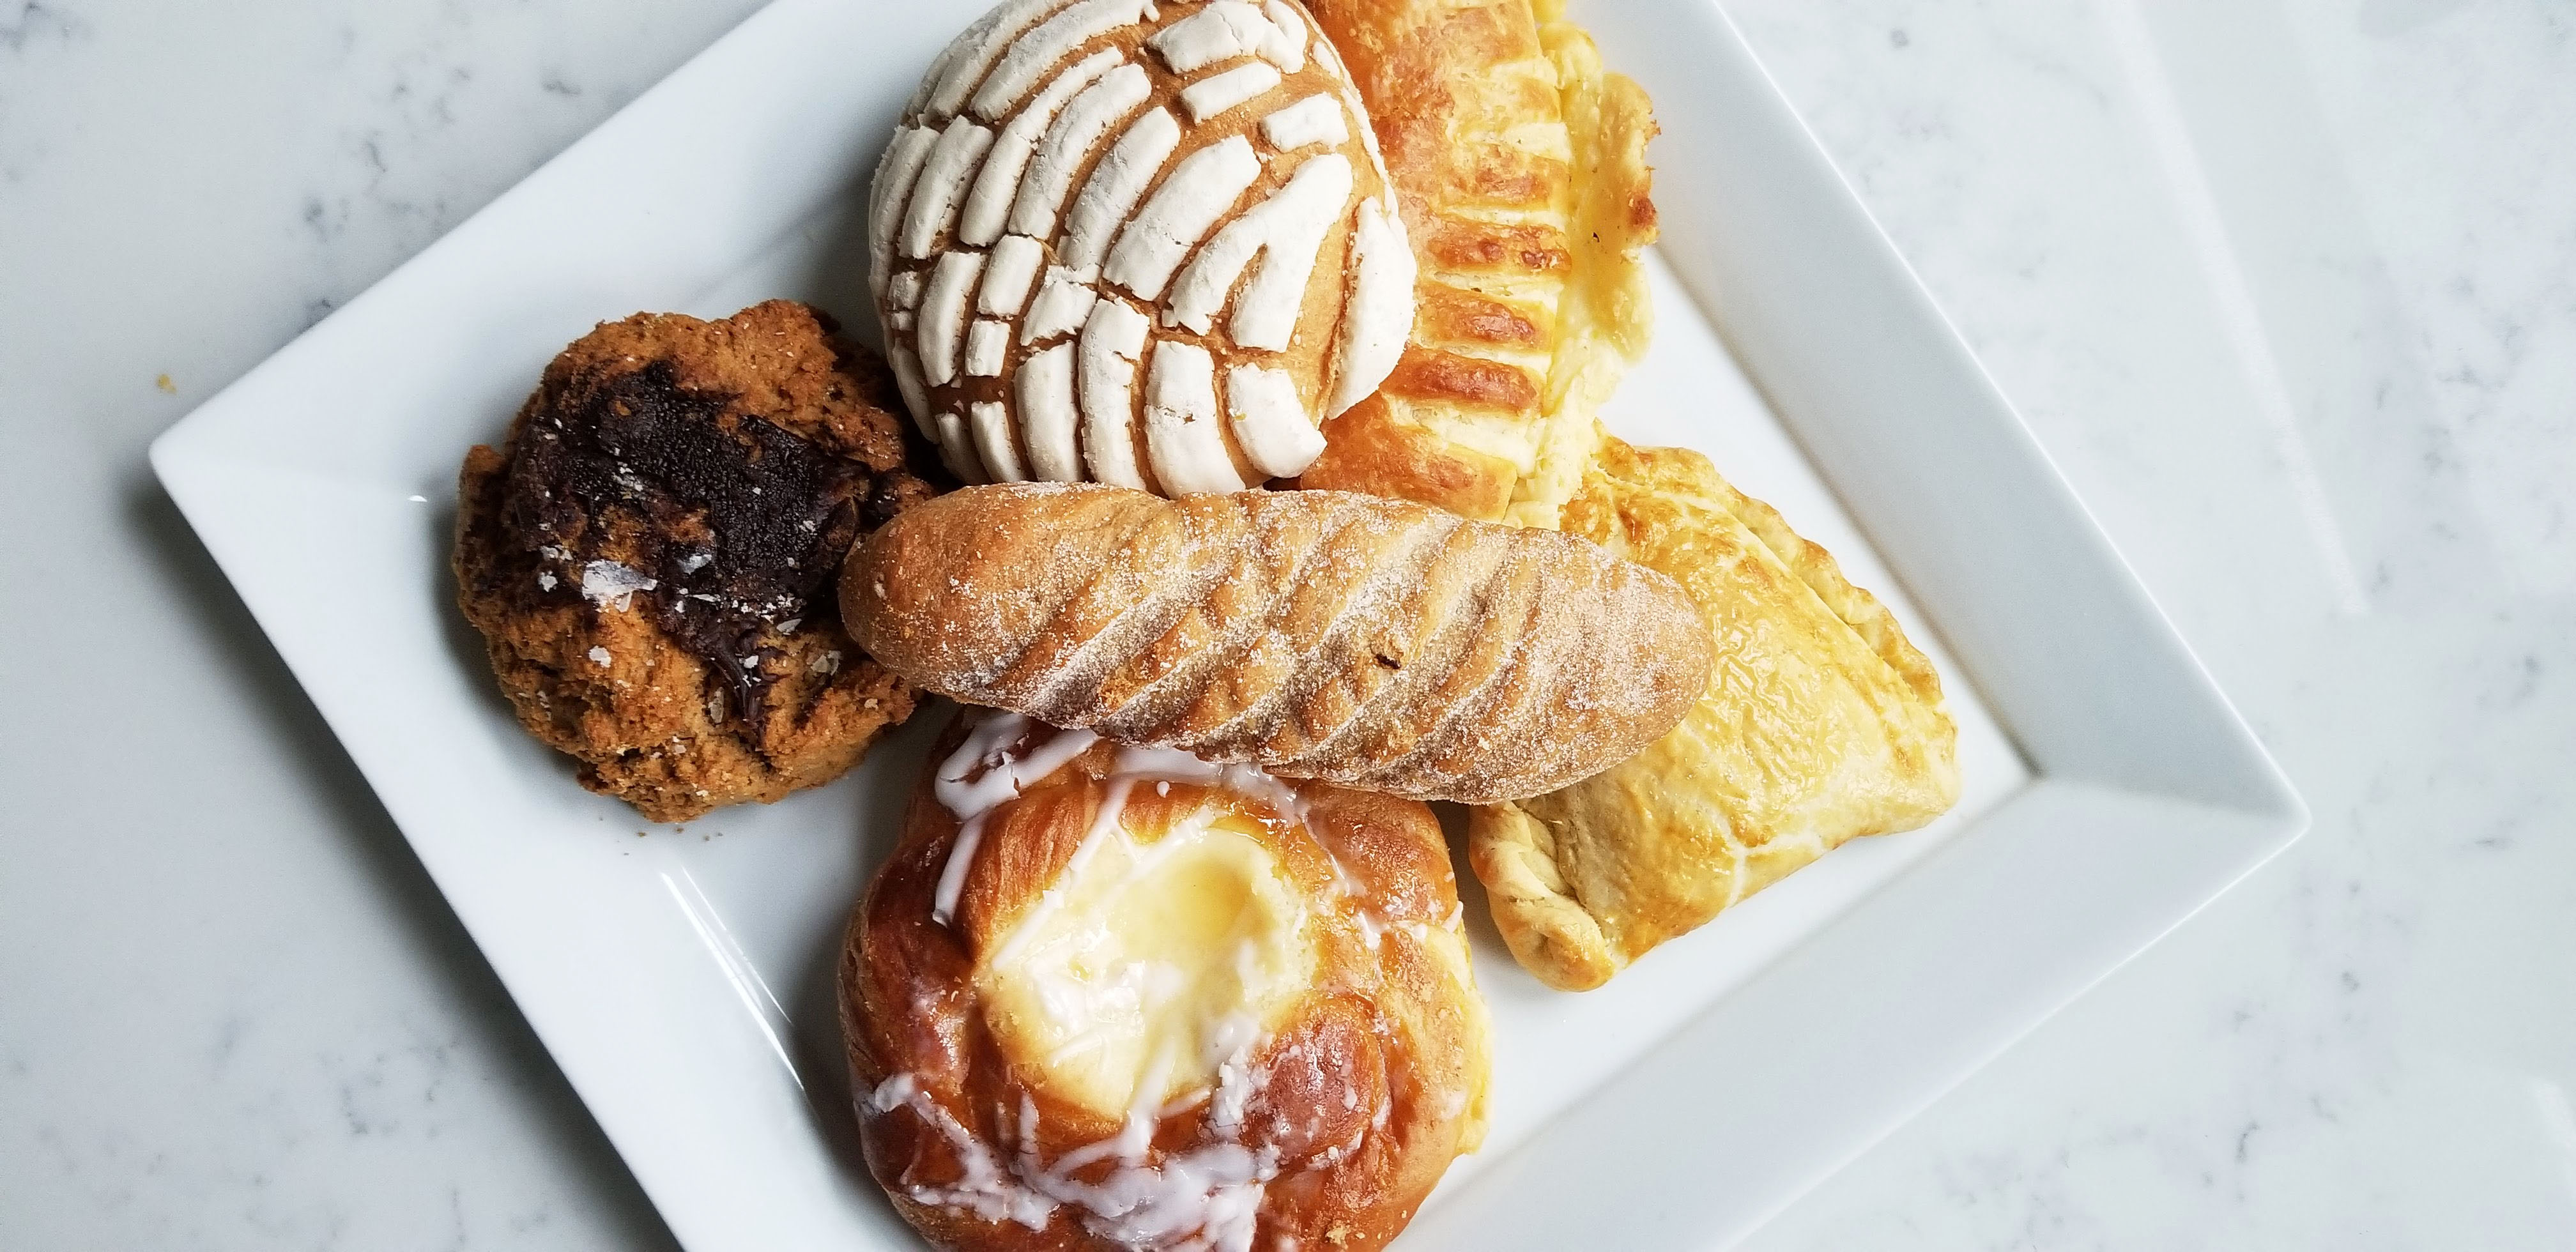 dining out: markello's baking company